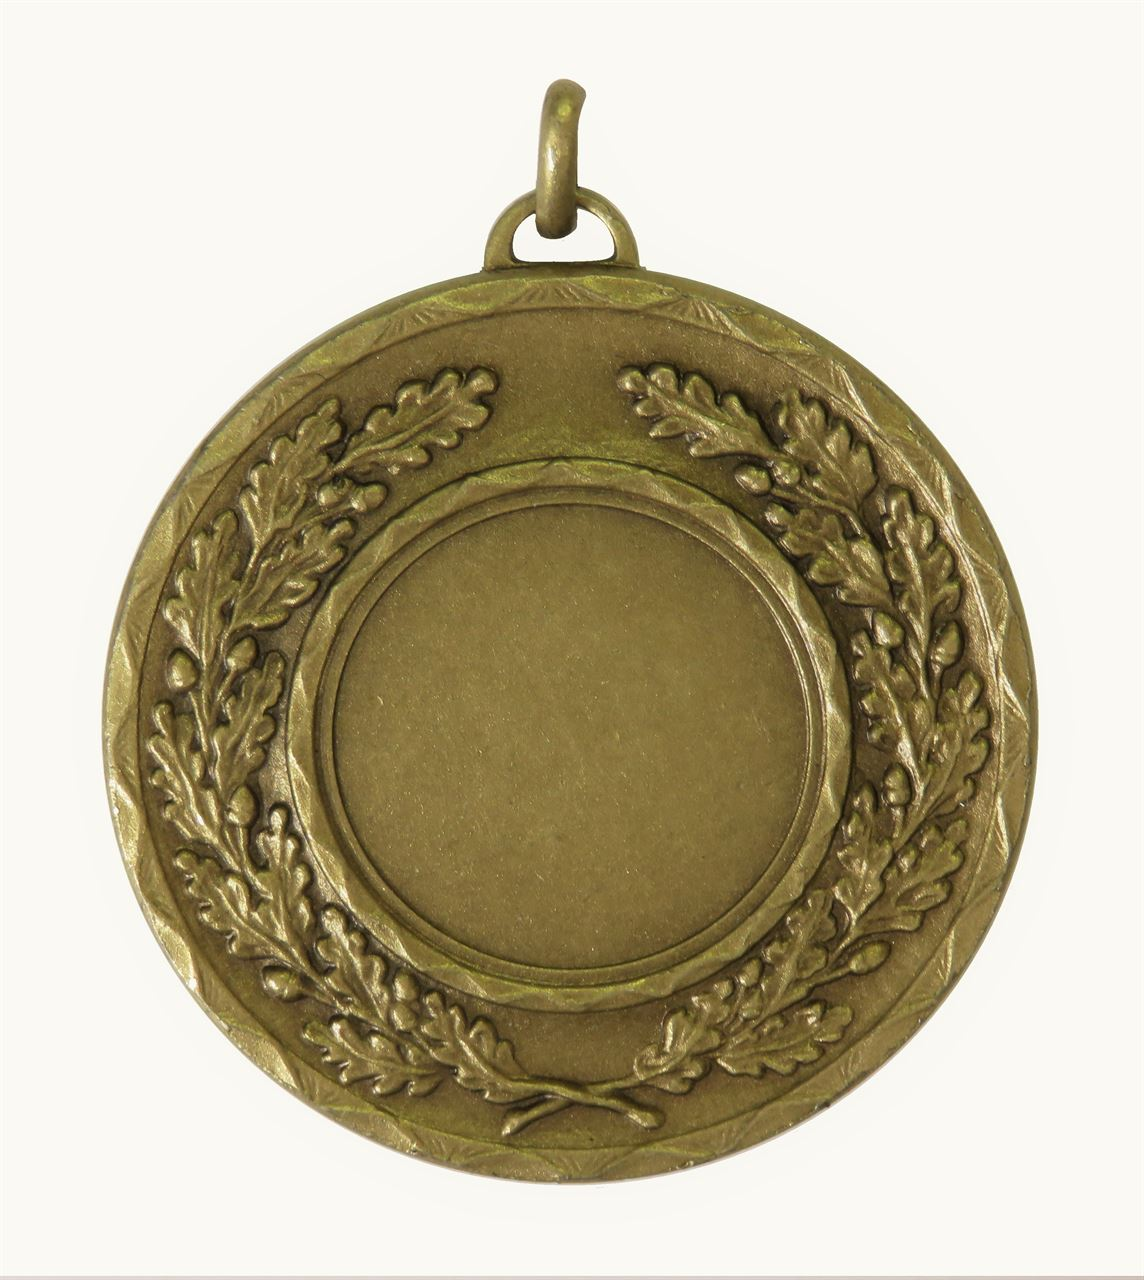 Bronze Quality Classic Wreath Medal (size: 50mm) - 5595E